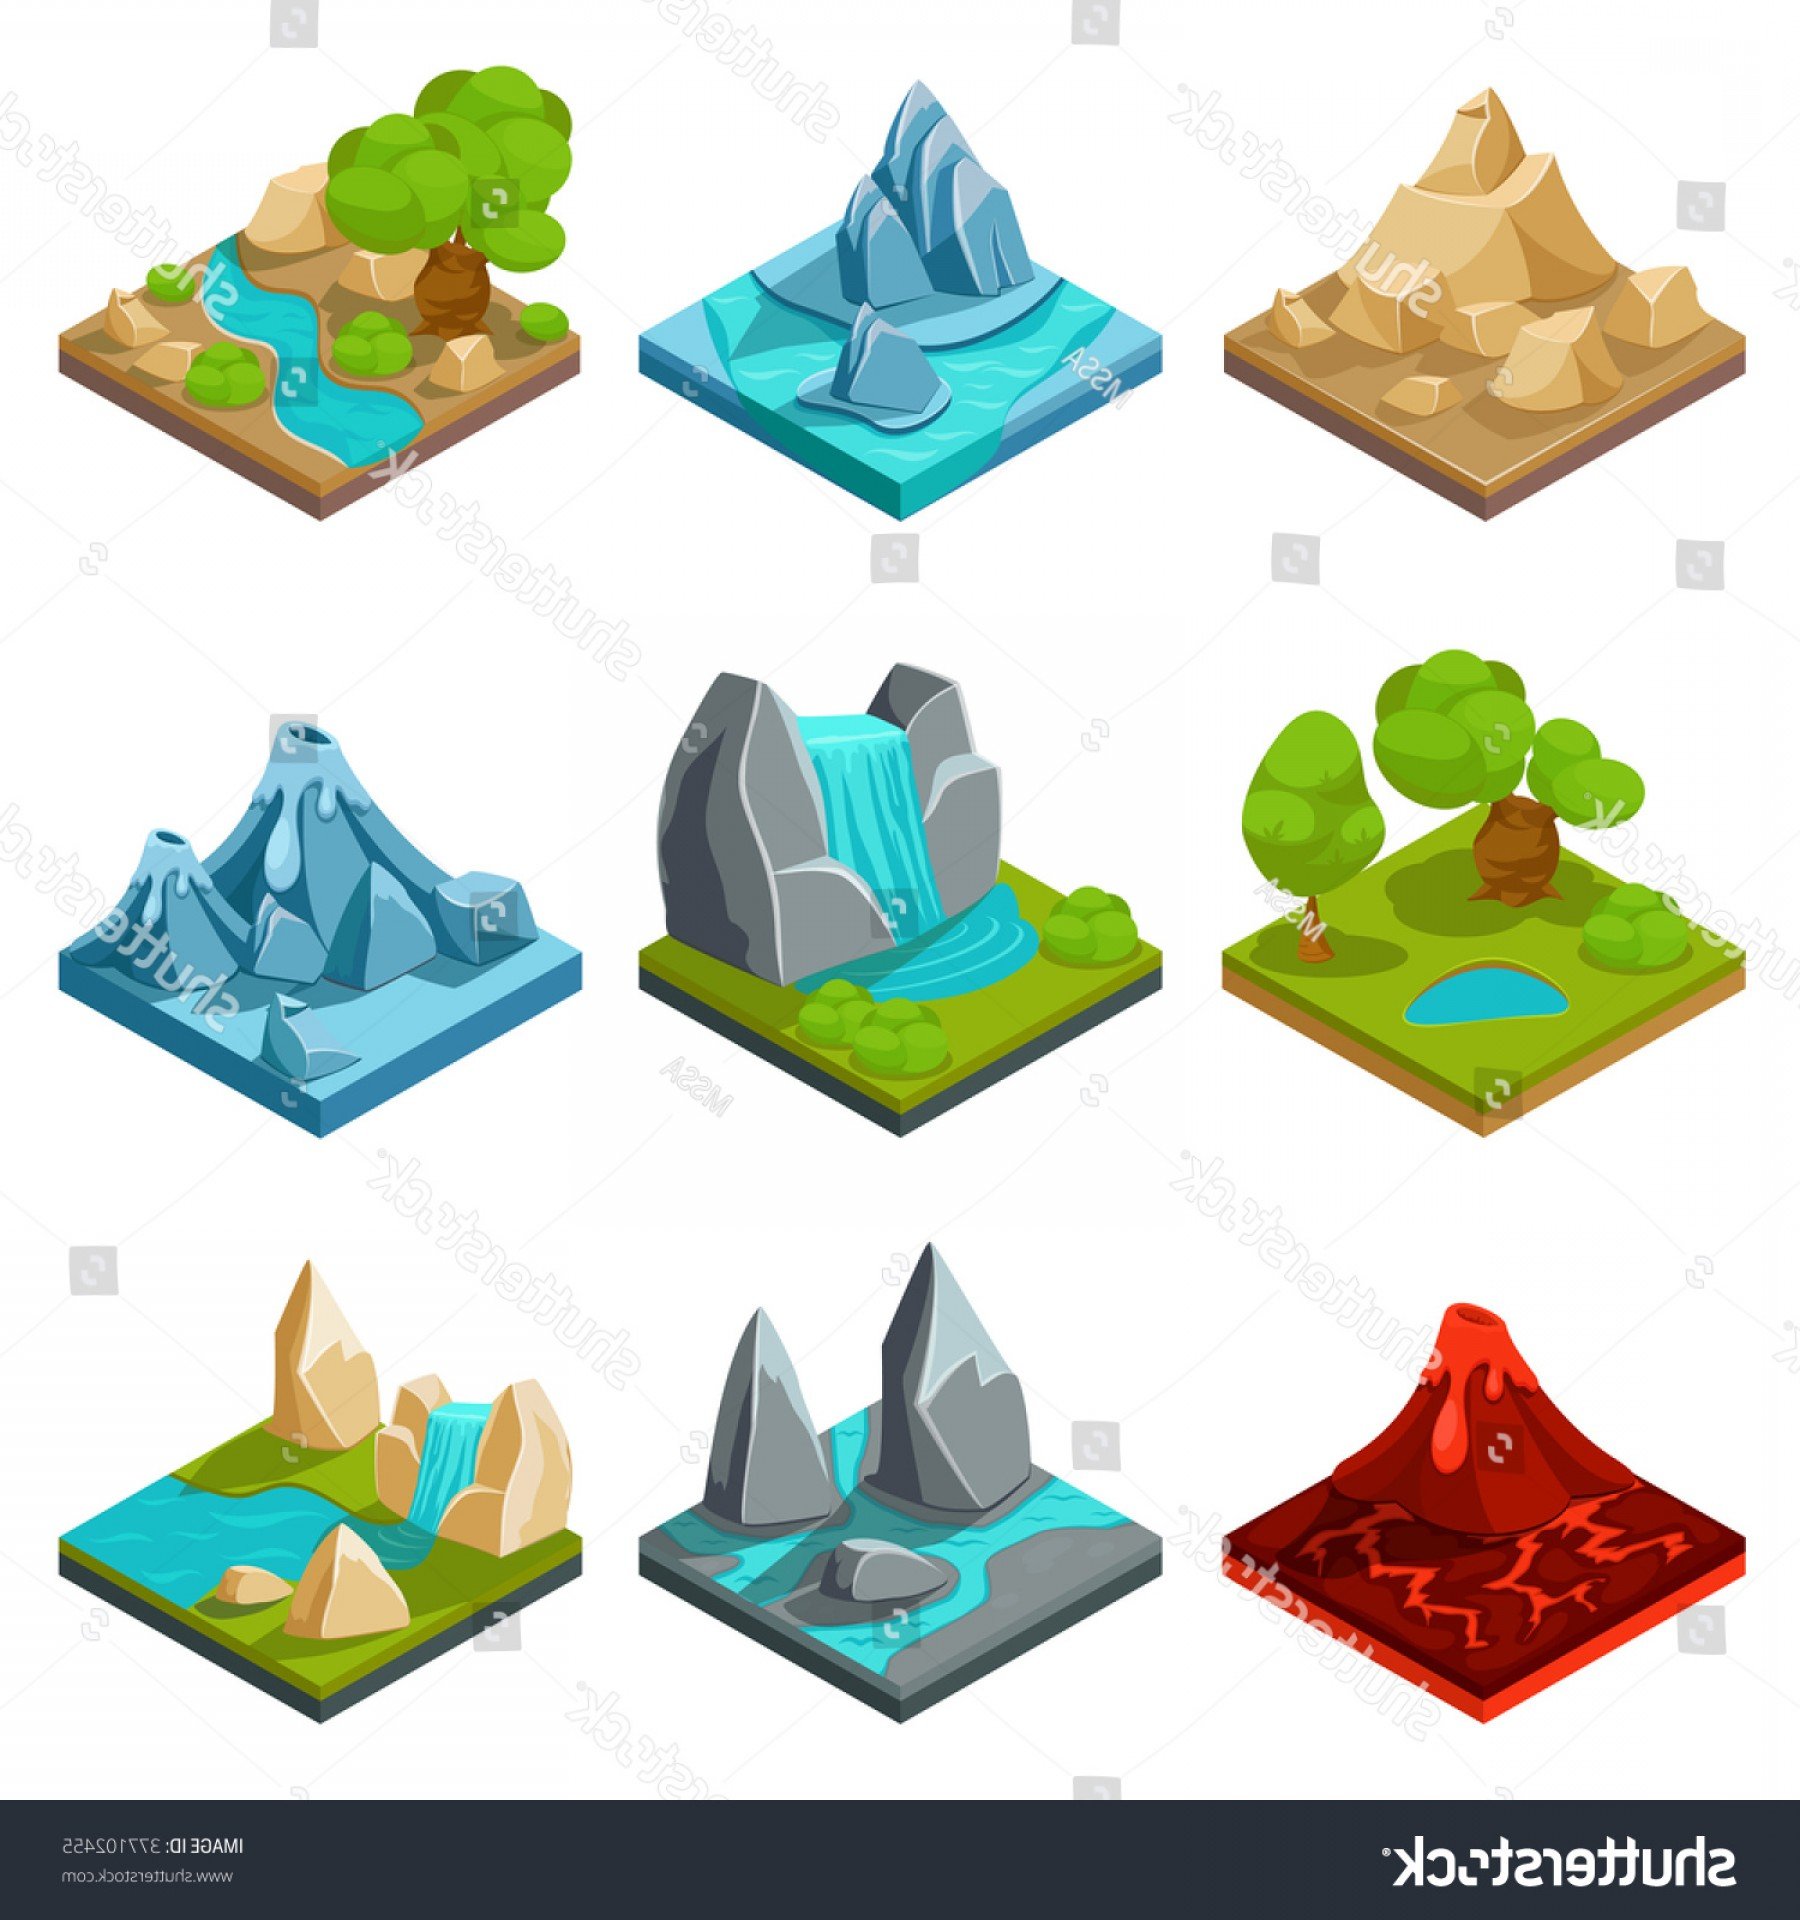 Vector Stone Landscaping: Game Ground Items Nature Stone Landscape